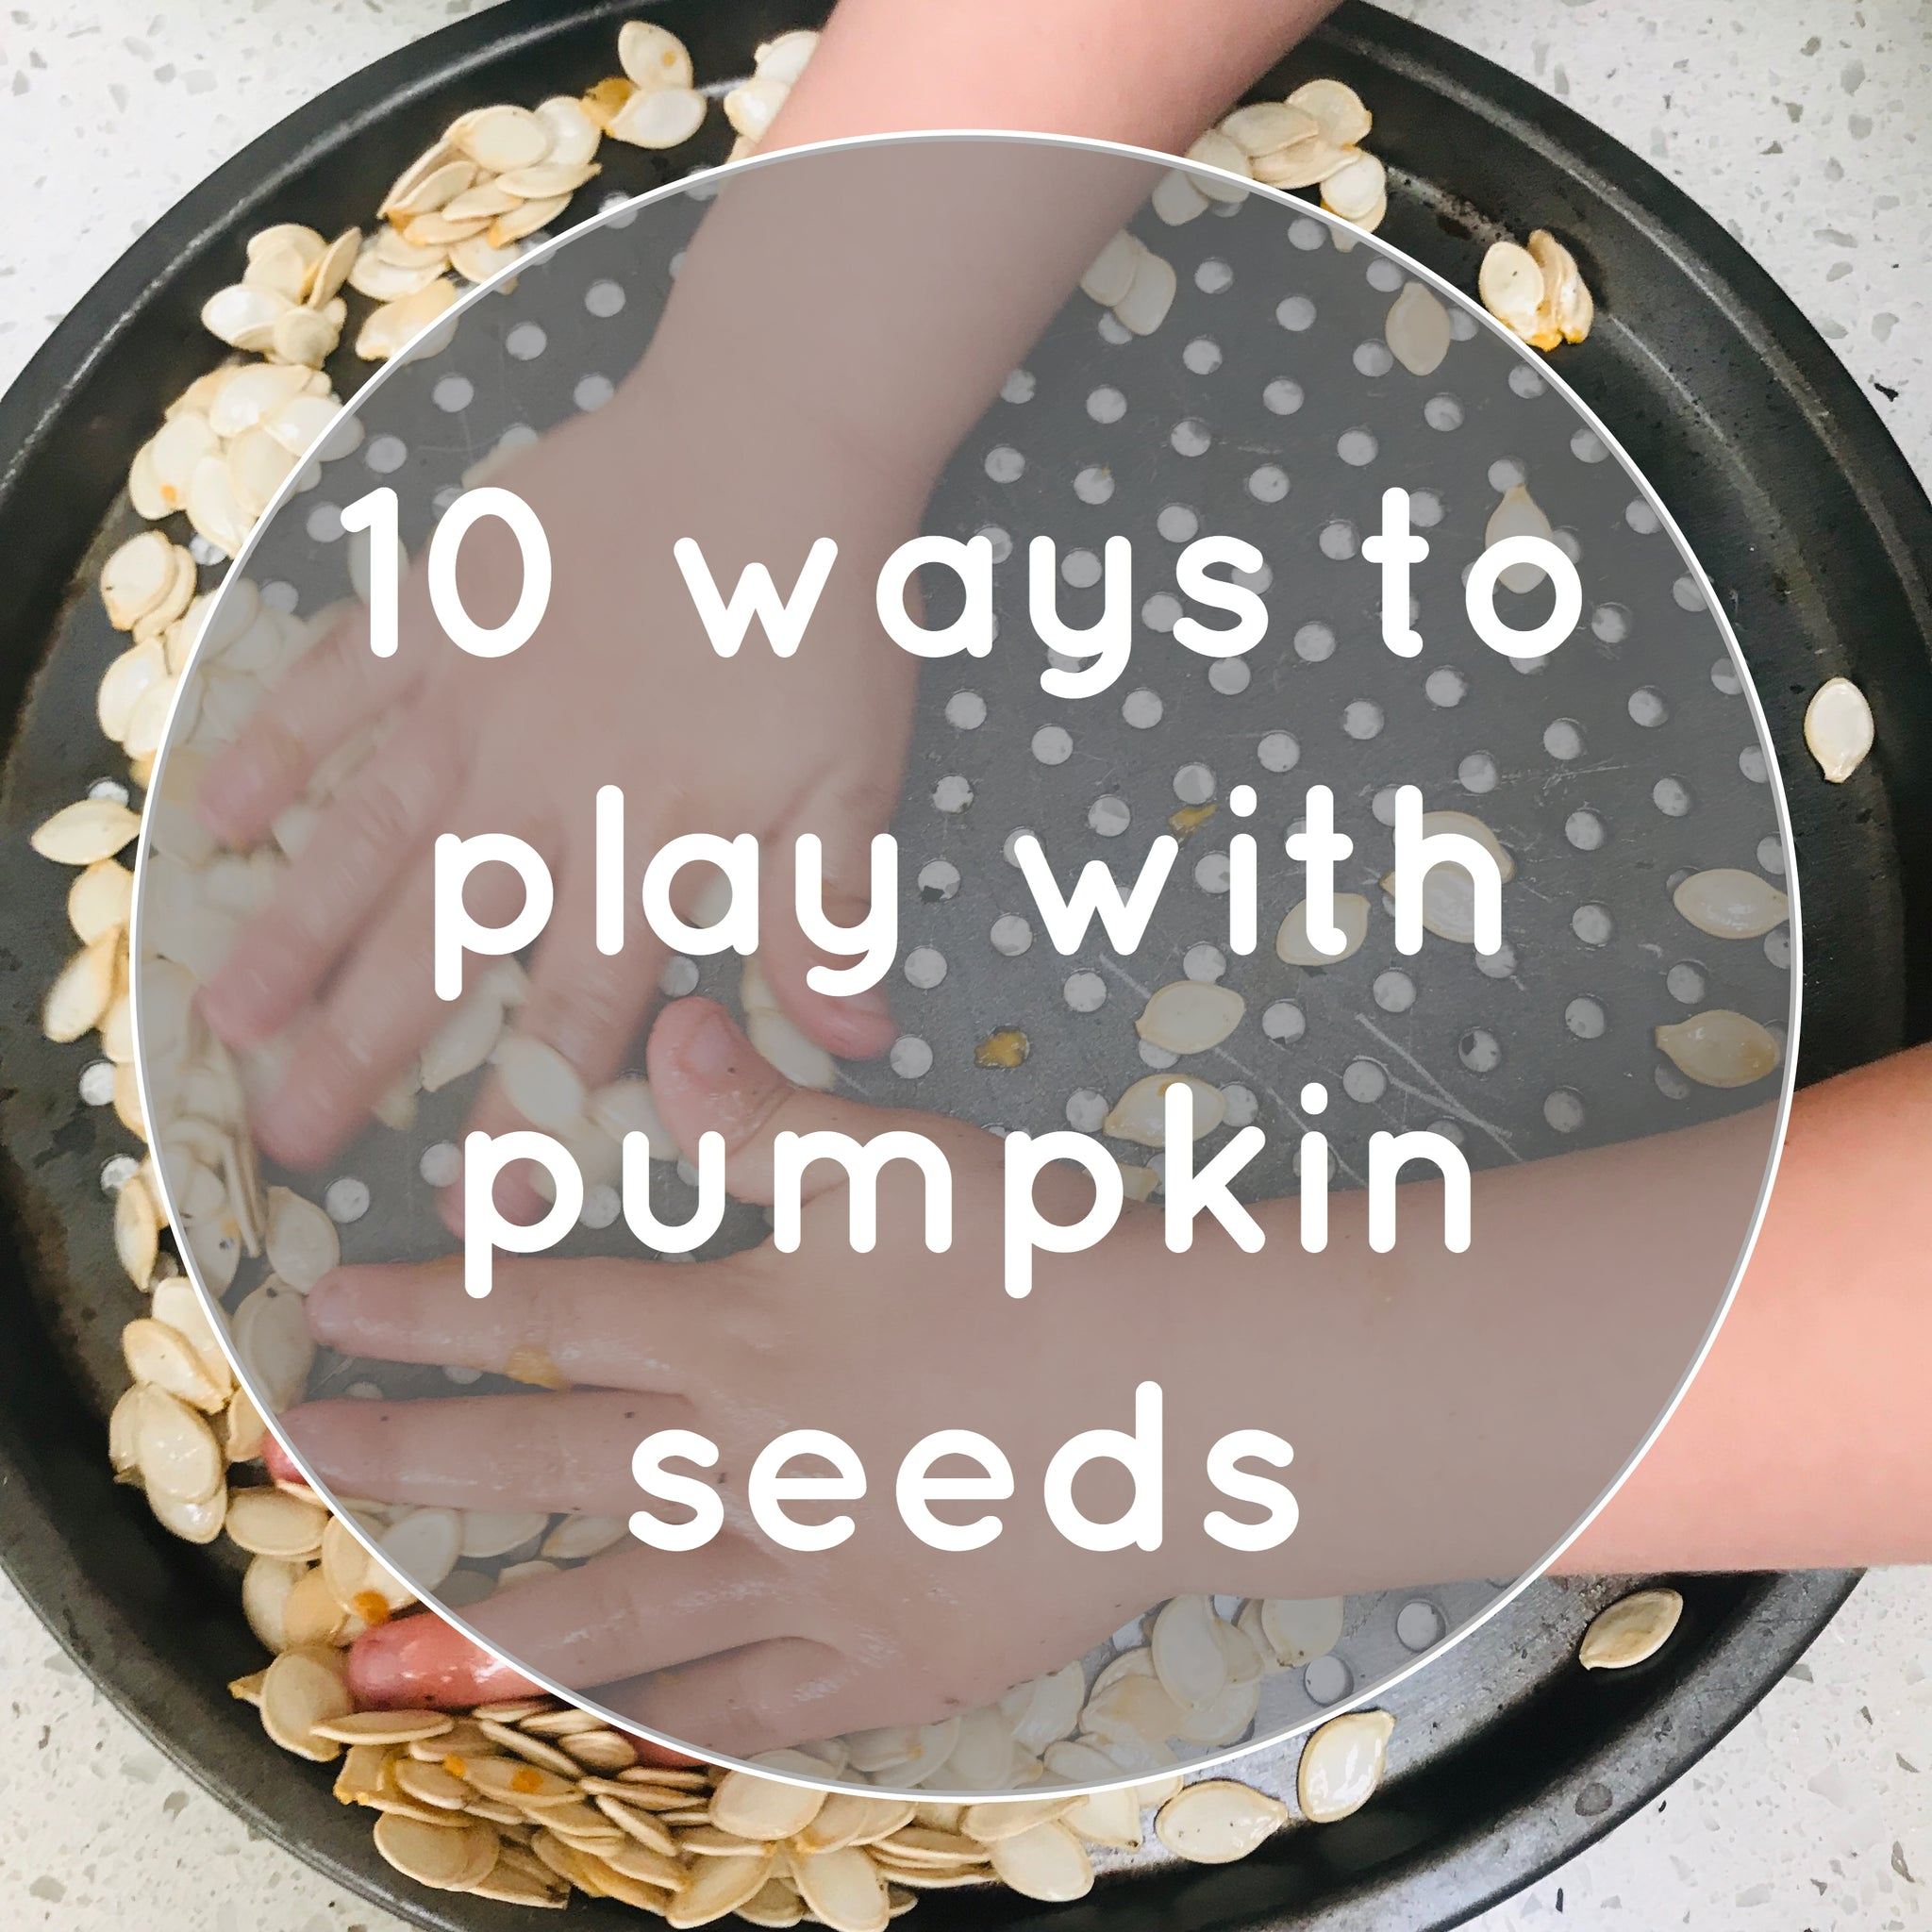 10 Ways to Play with Pumpkin Seeds